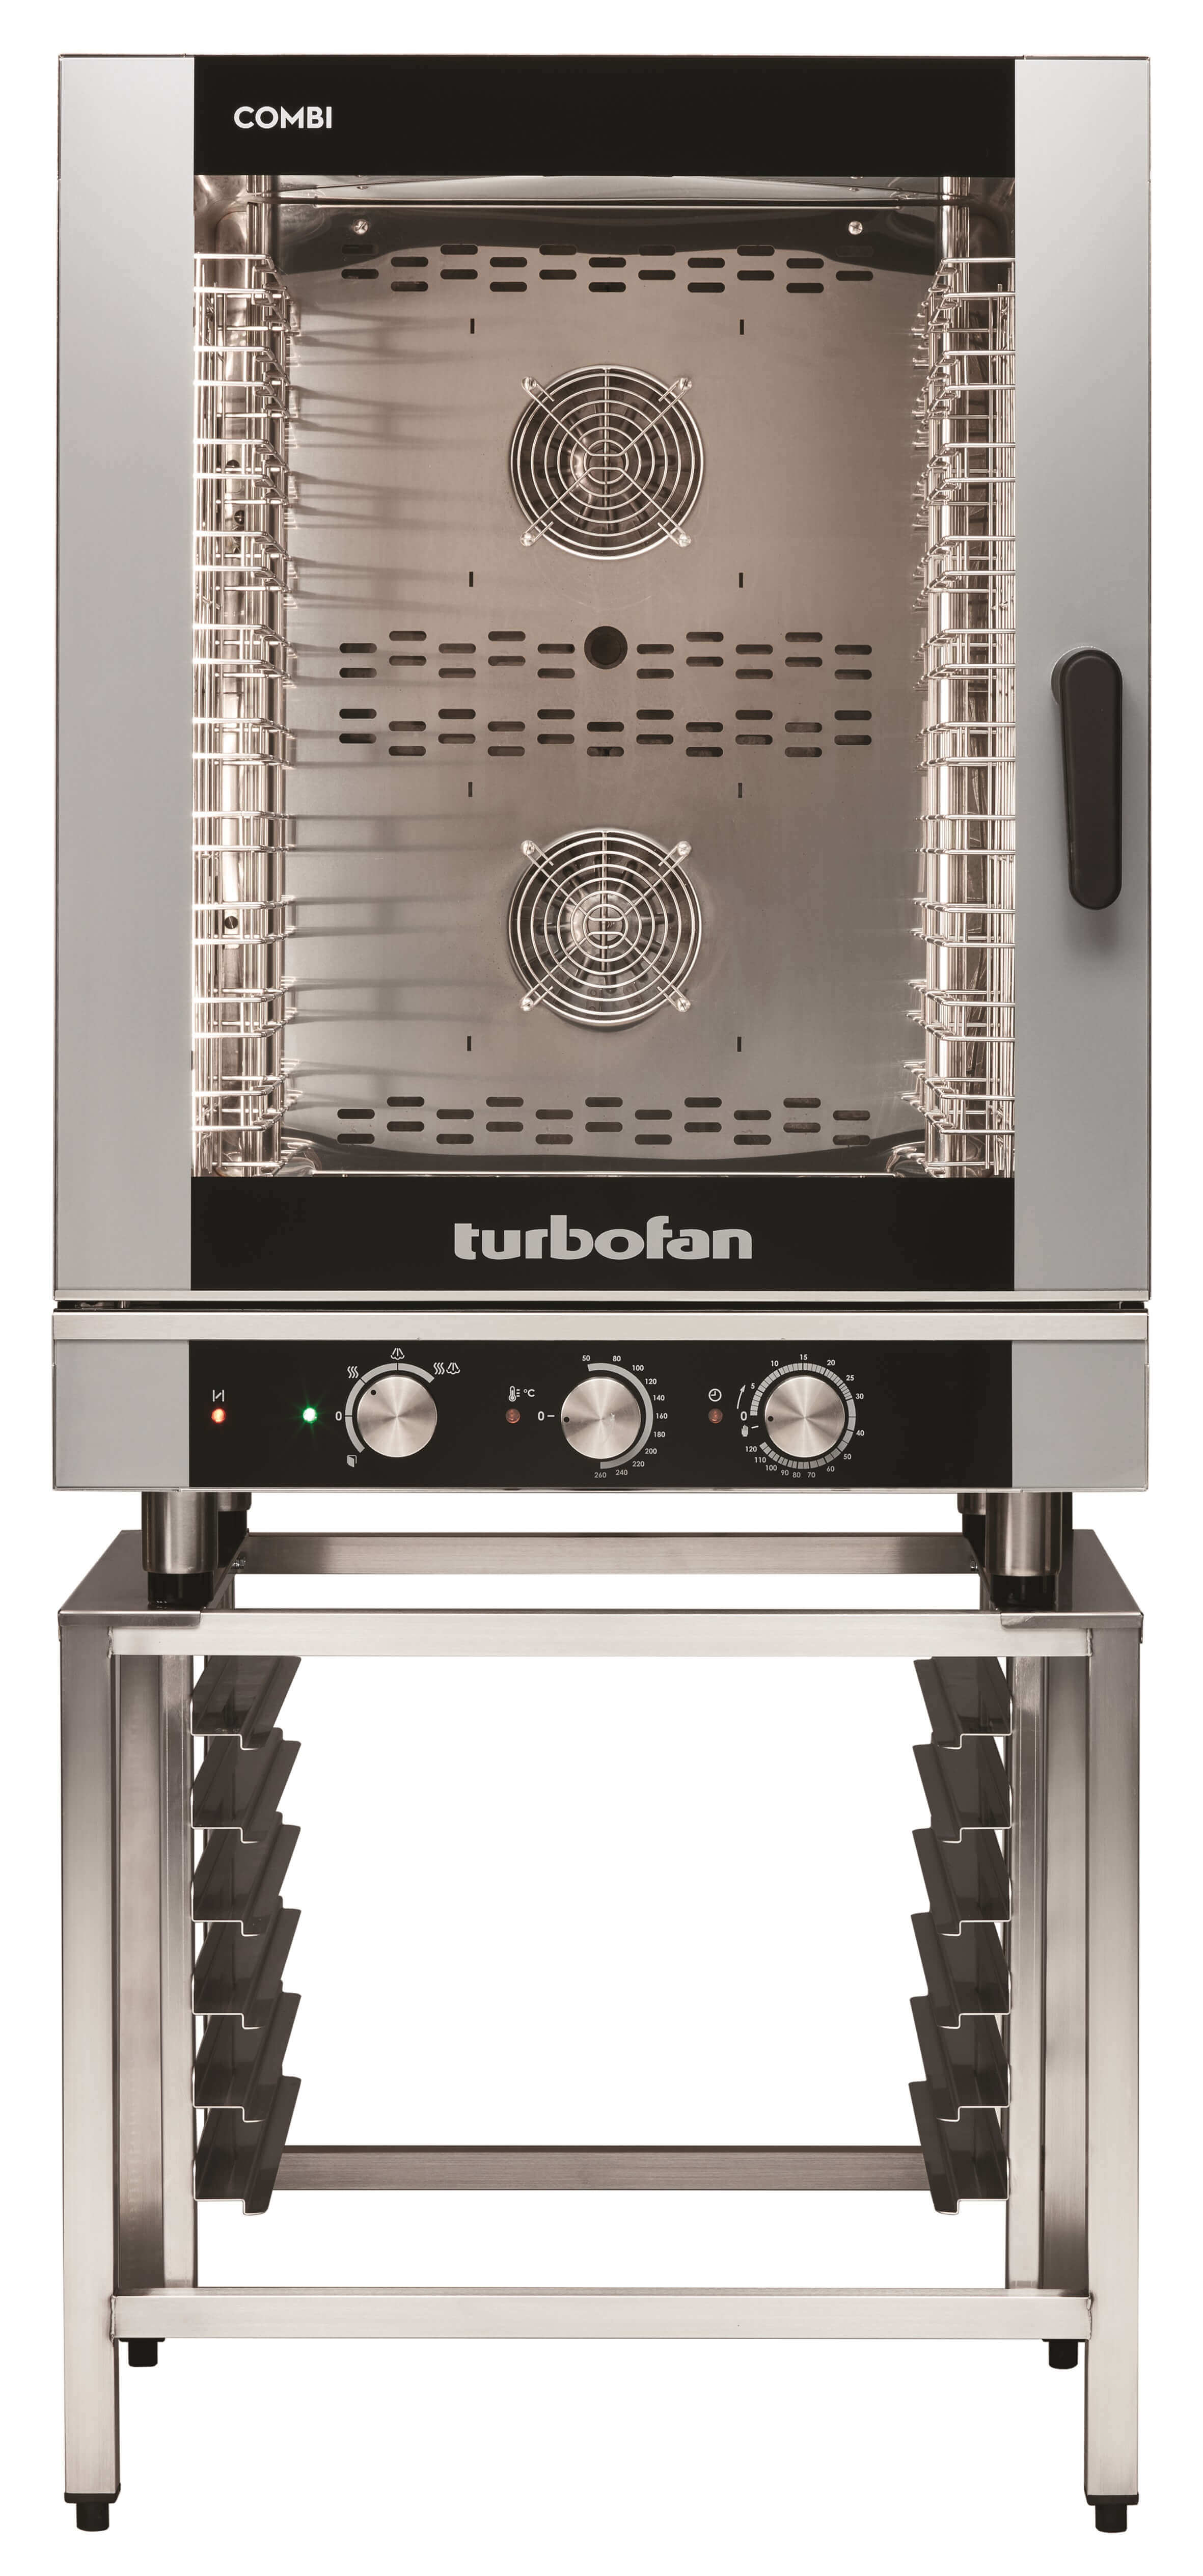 Blue Seal Turbofan EC40M10 Combi Steamer